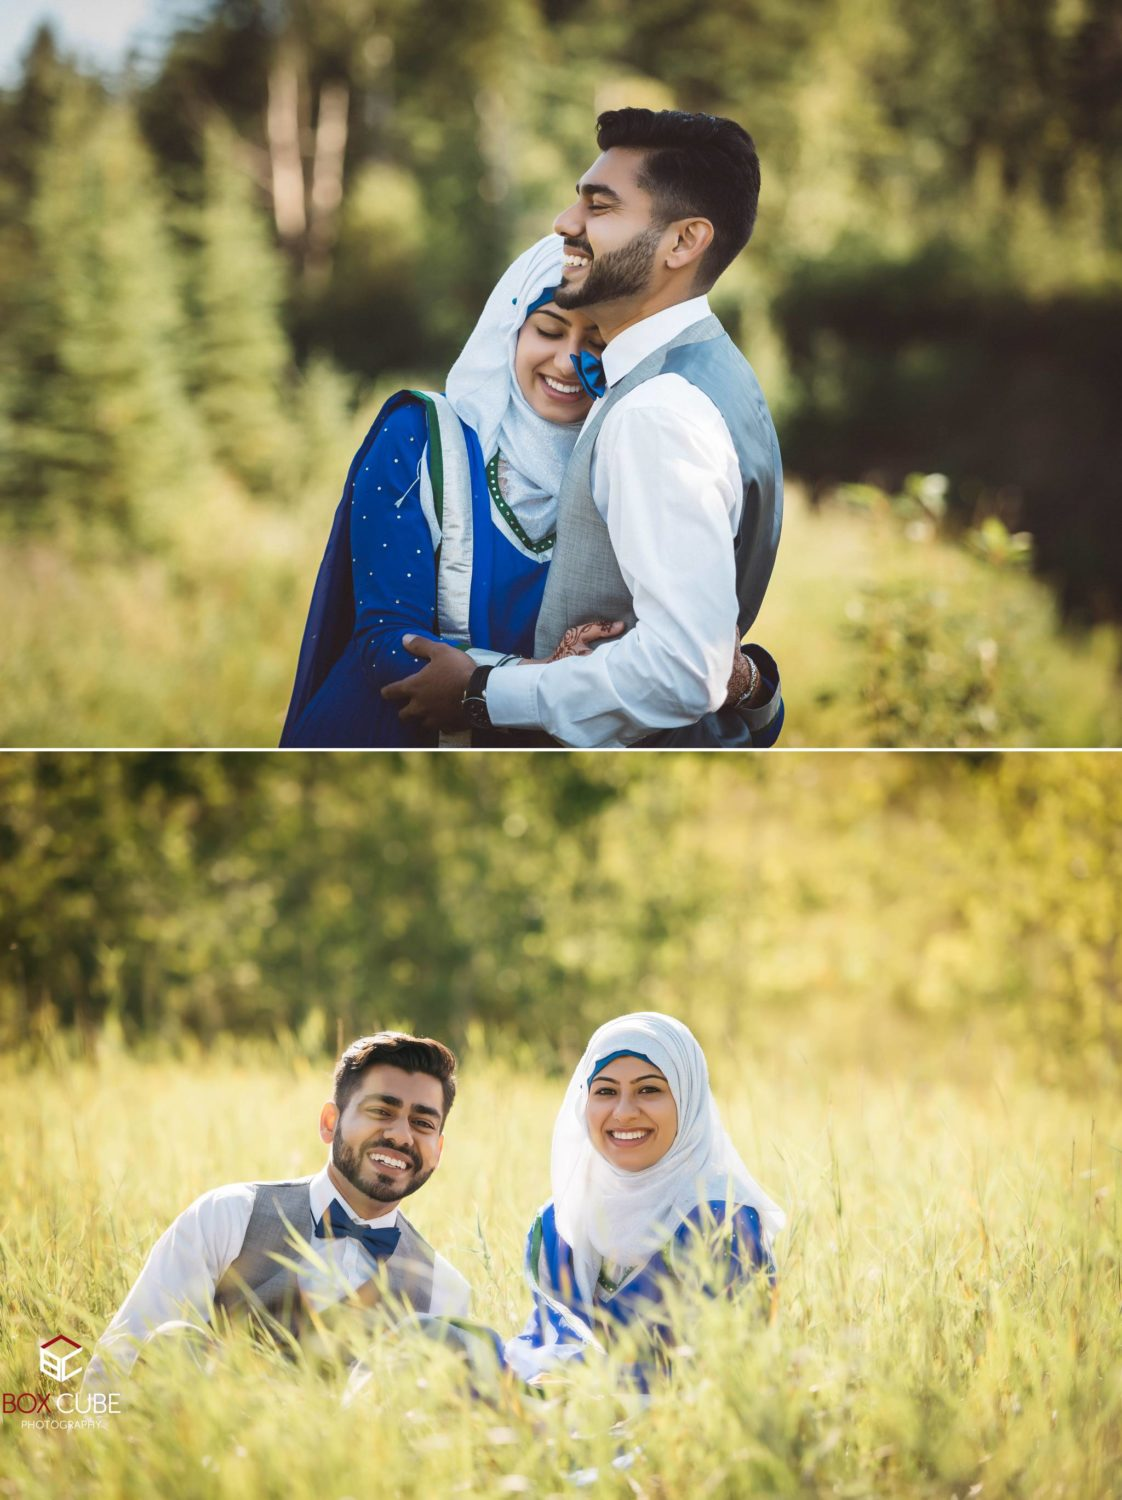 edmonton-wedding-photographers-box-cube-photography-zahra-jawad 2